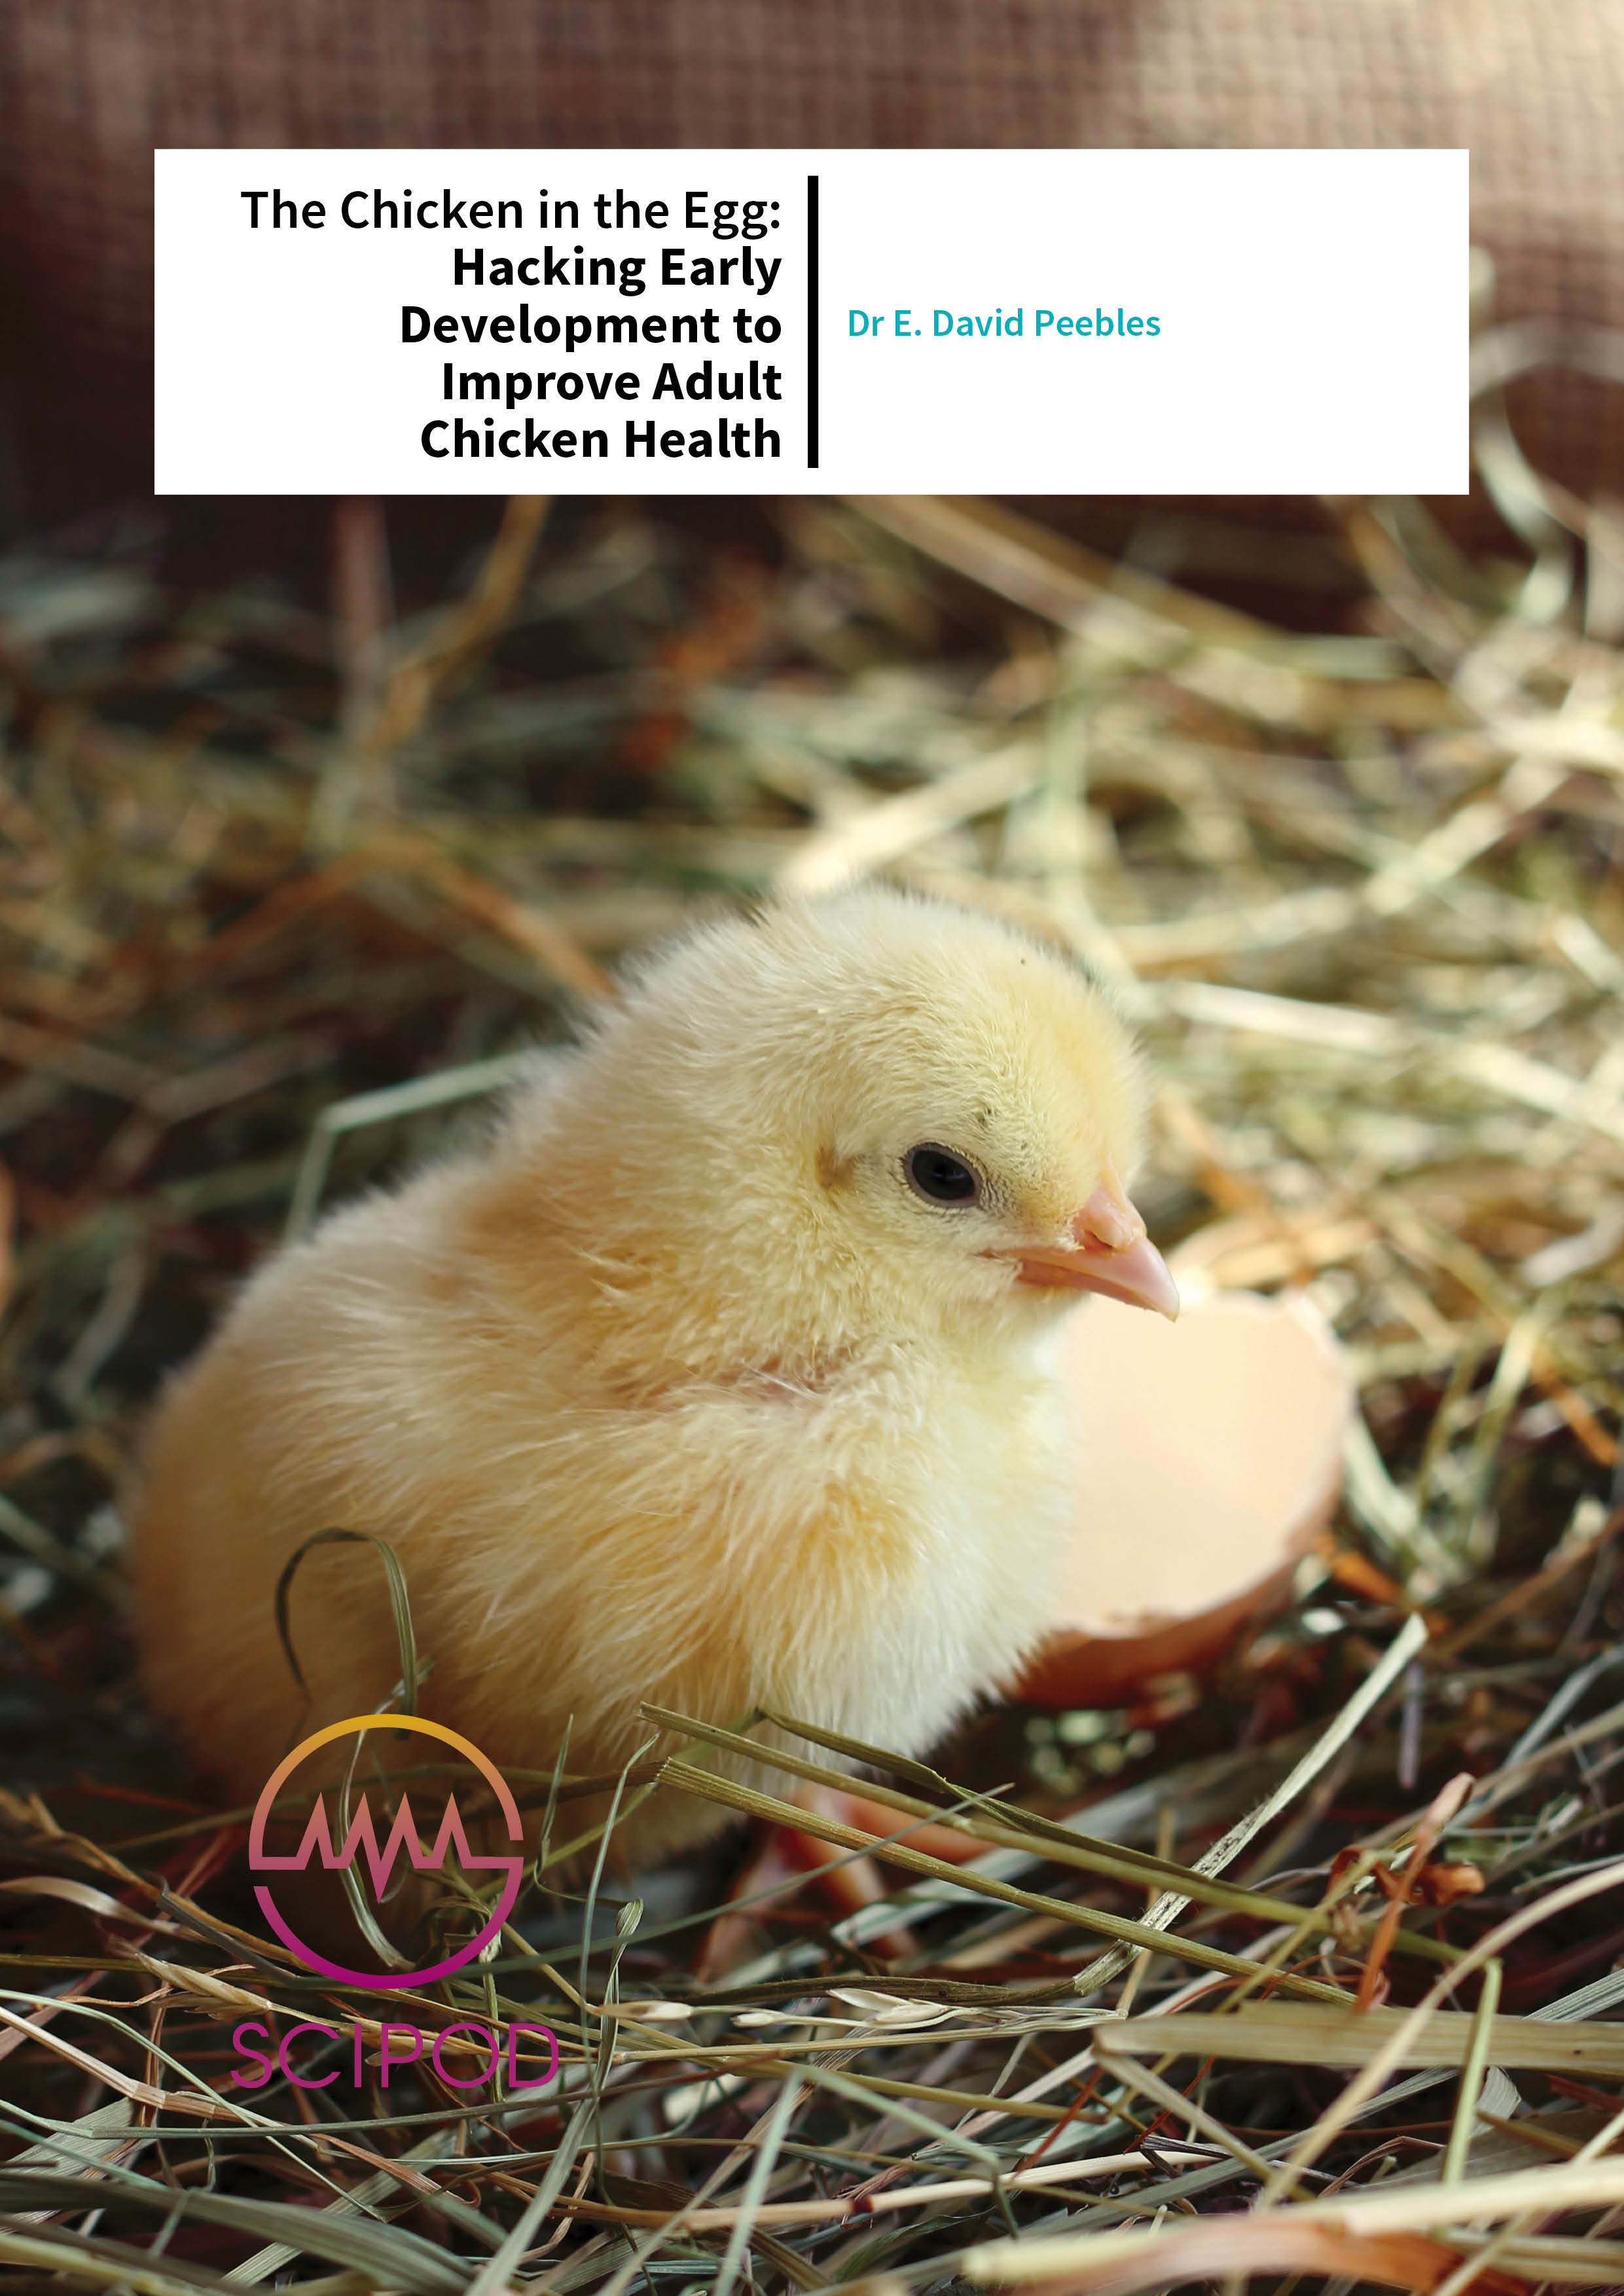 The Chicken in the Egg: Hacking Early Development to Improve Adult Chicken Health – Dr E. David Peebles, Mississippi State University